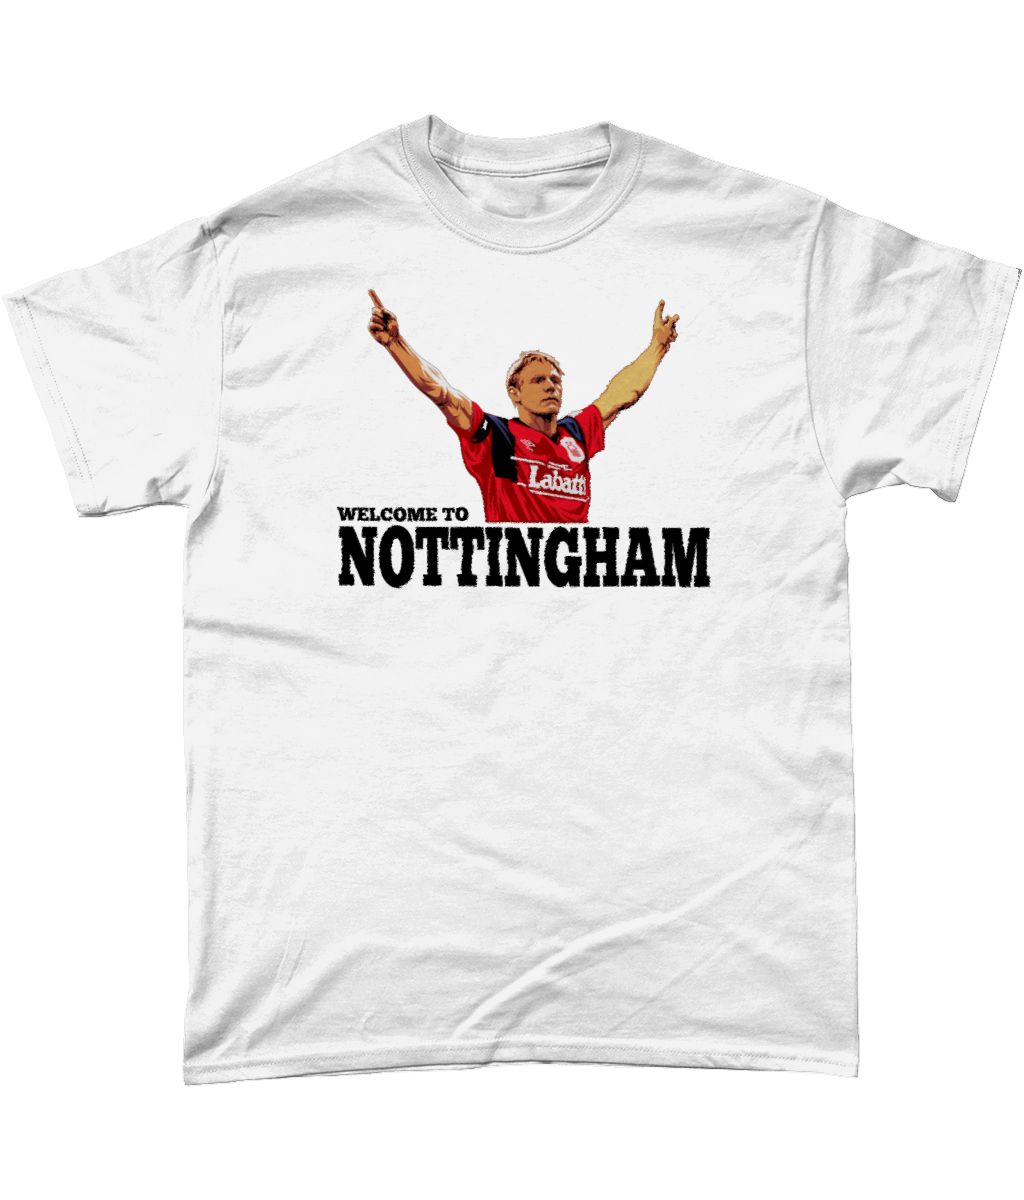 Psycho 'Welcome To Nottingham' Budget T-Shirt